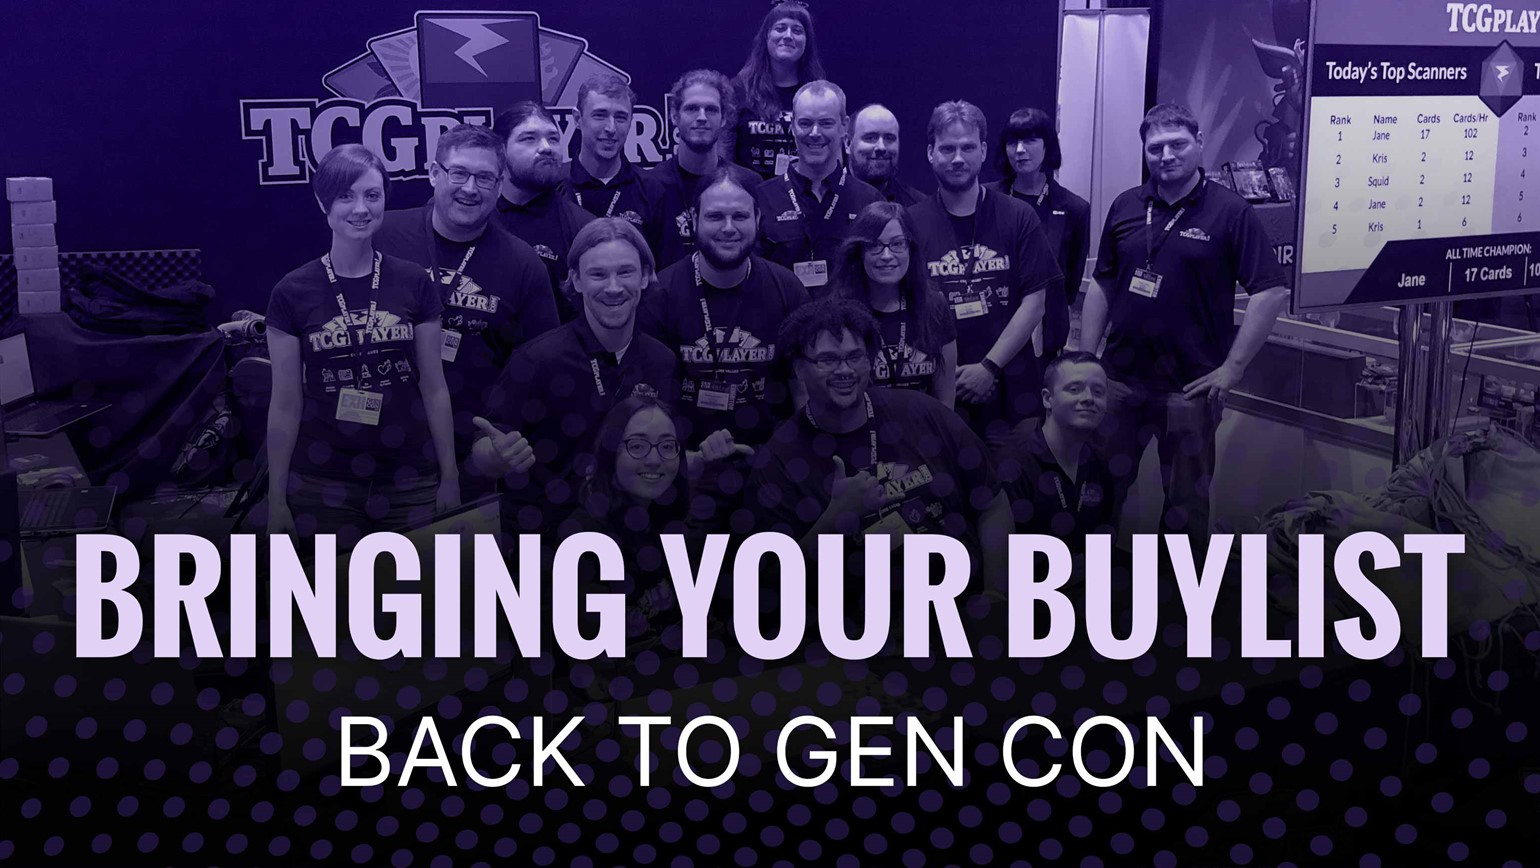 Get Ready: We're Taking Your Buylist to Gen Con